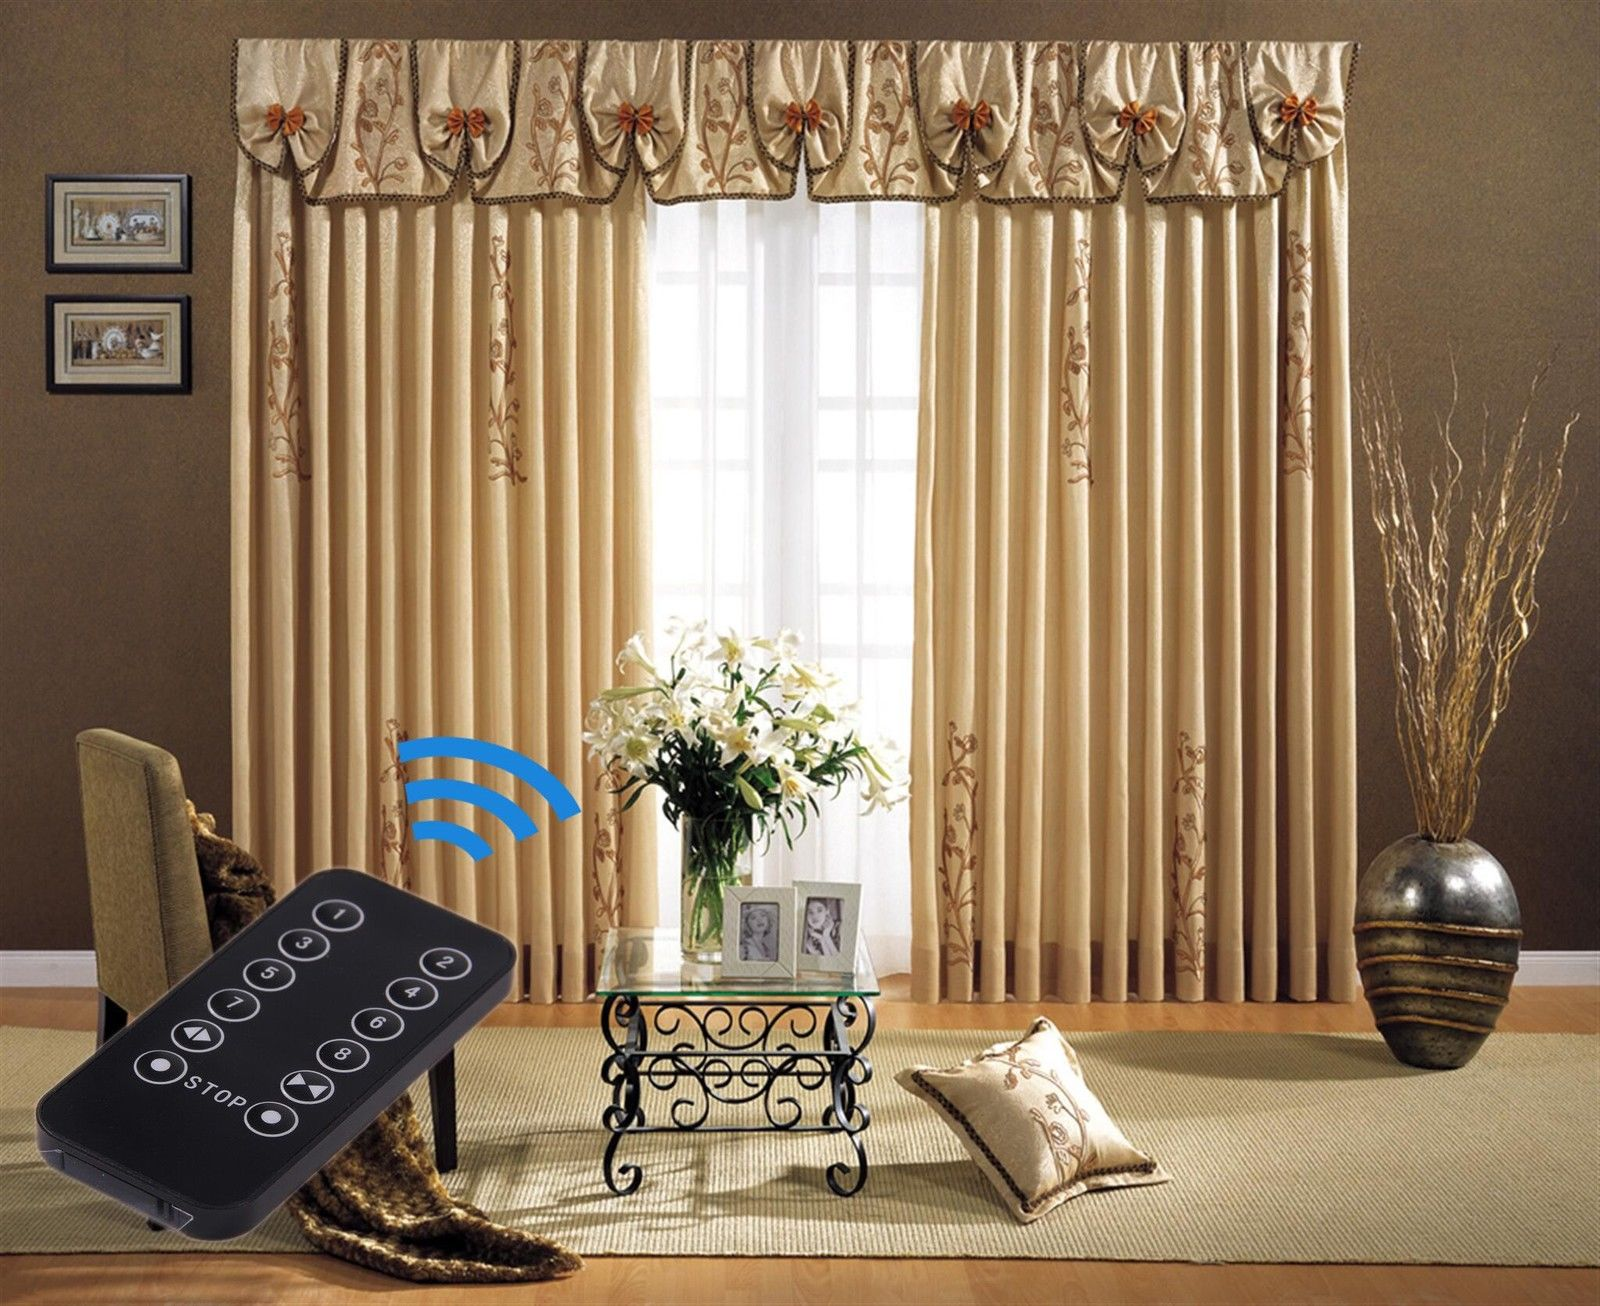 shades smart blinds end home automated miami motorized portfolio drapes image and featured img high